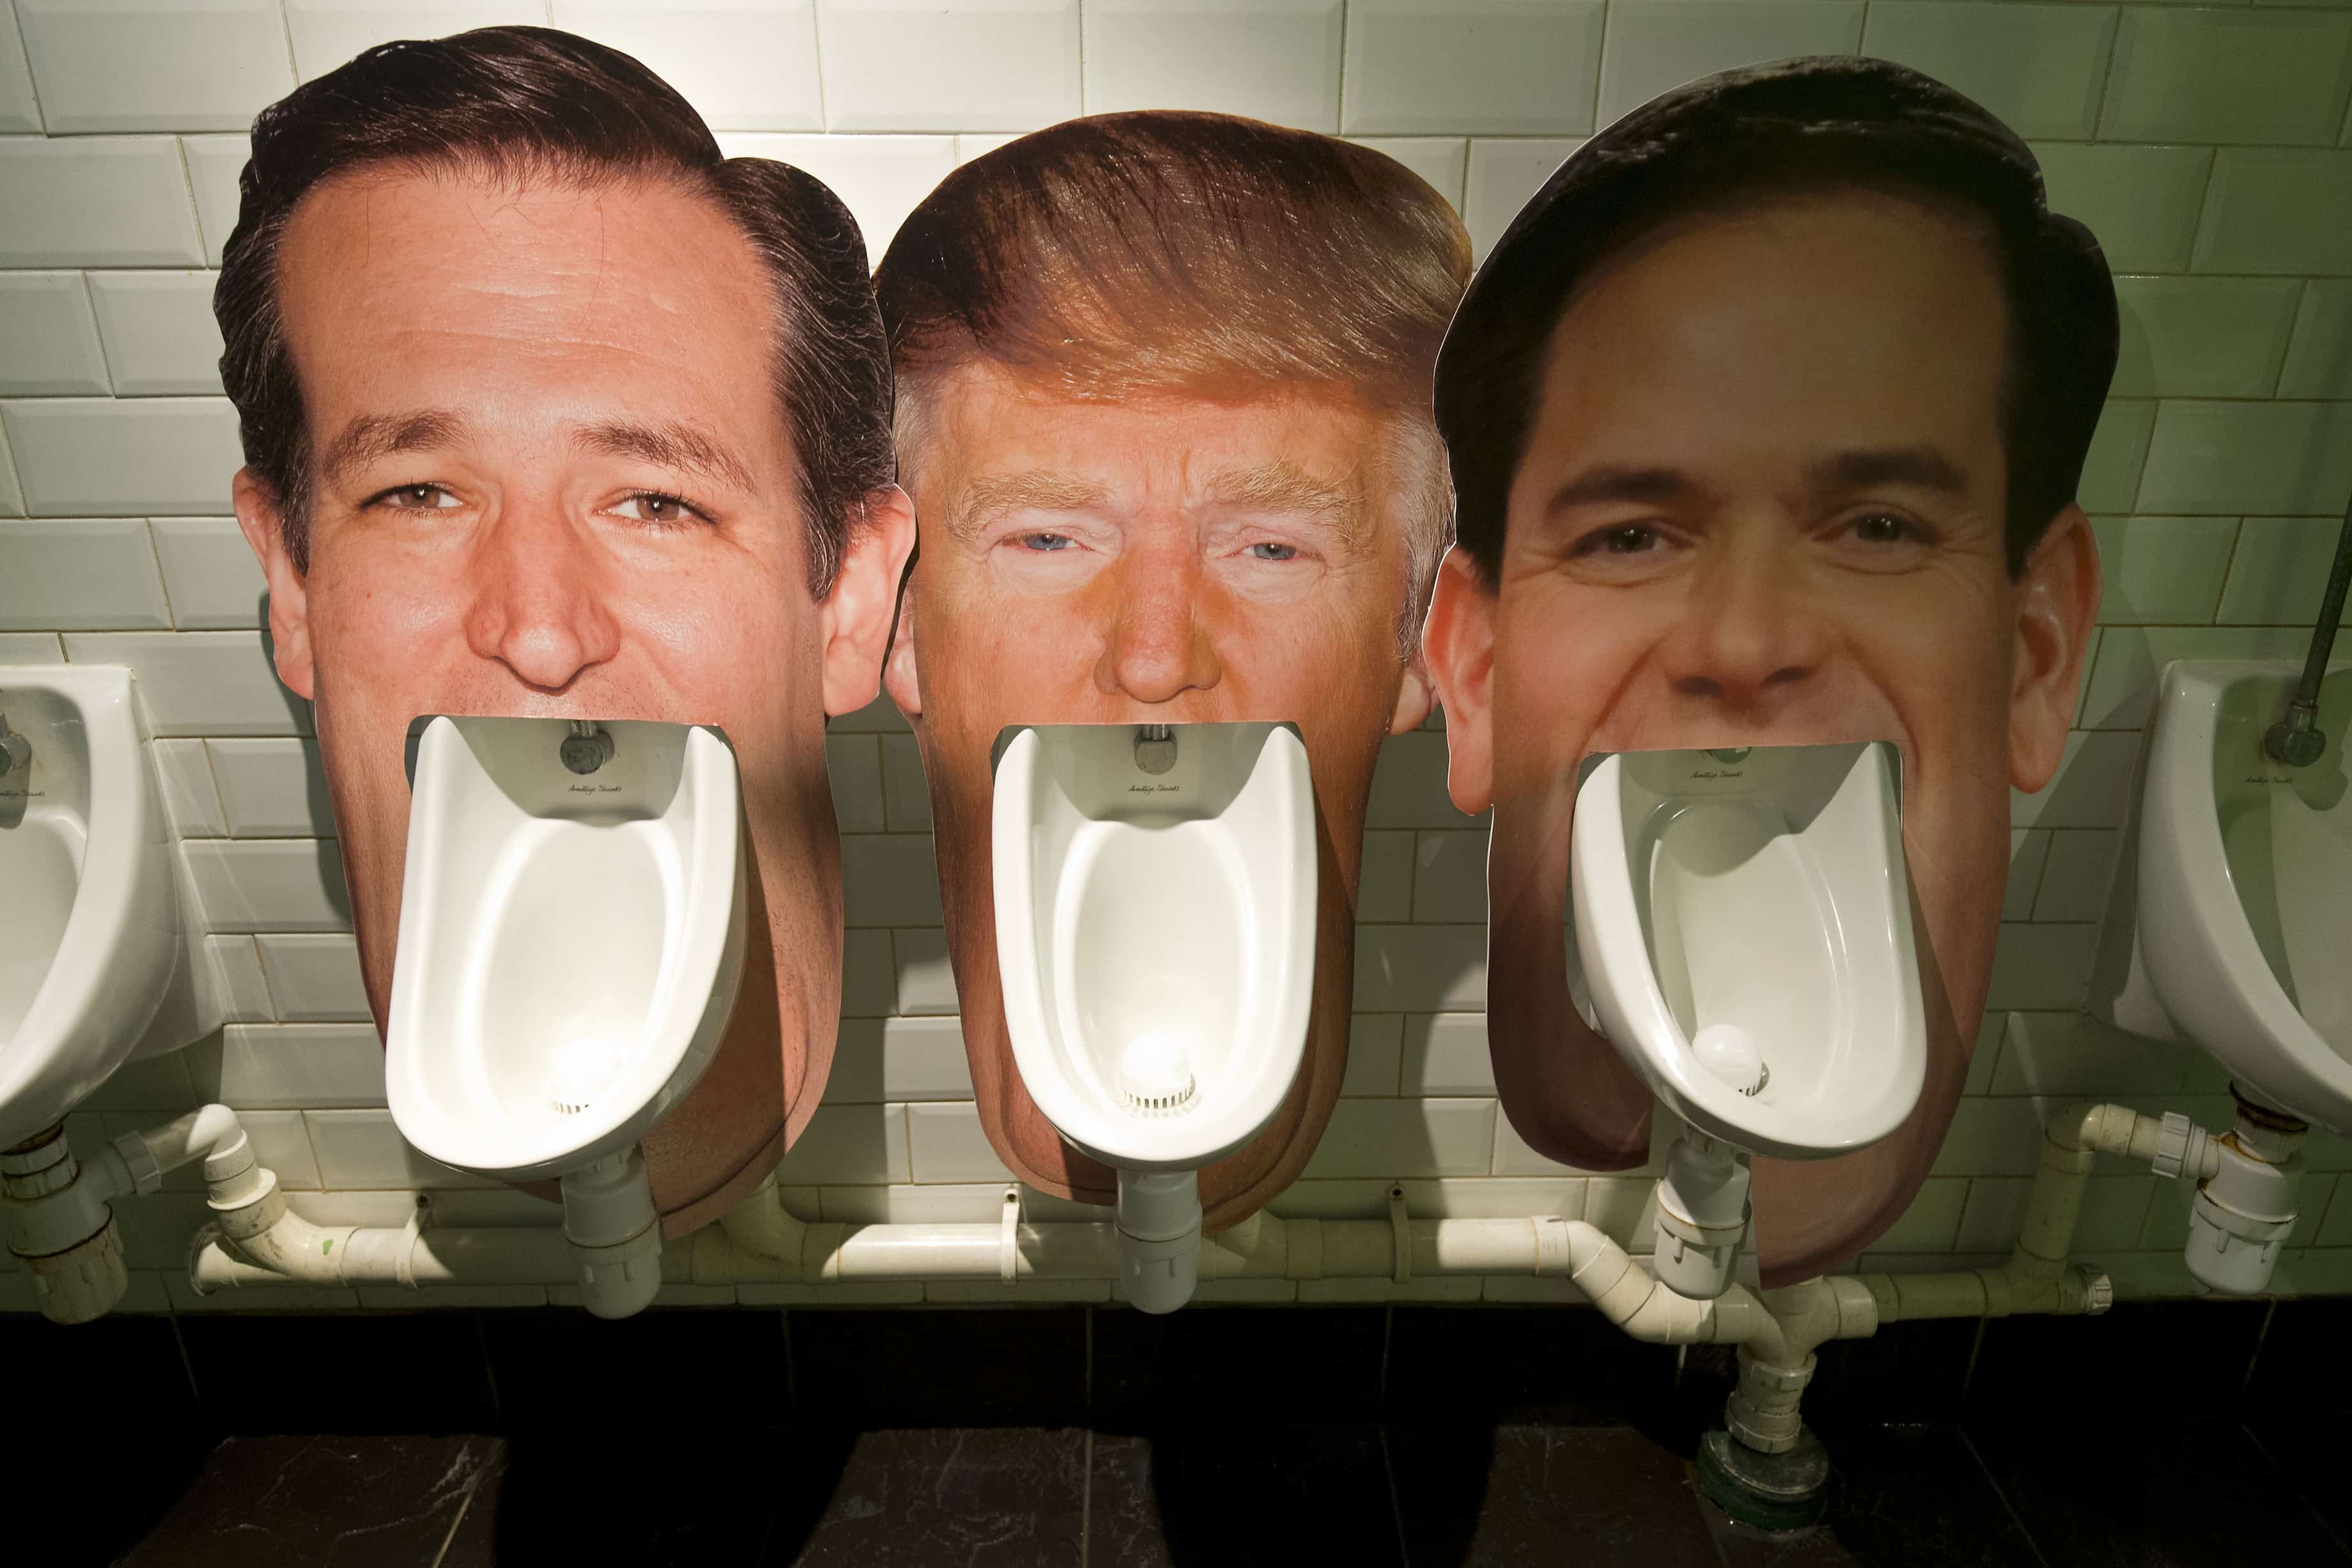 Trump mexico; Cardboard cutouts of Republican presidential candidates (left to right) Ted Cruz, Donald Trump and Marco Rubio